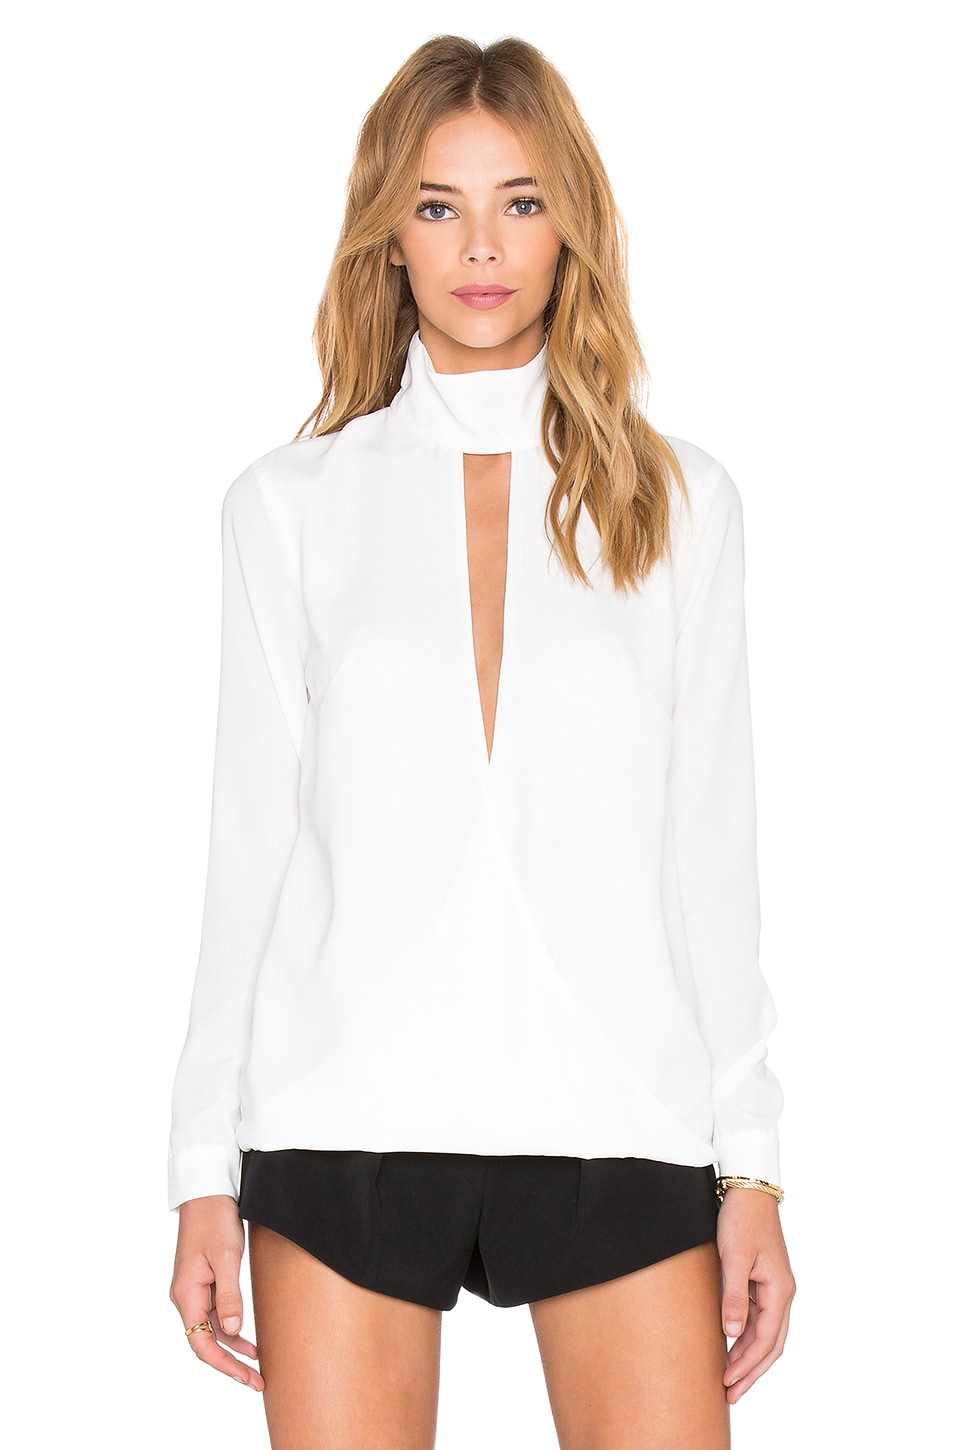 Finders Keepers The Light Long Sleeve Top in White